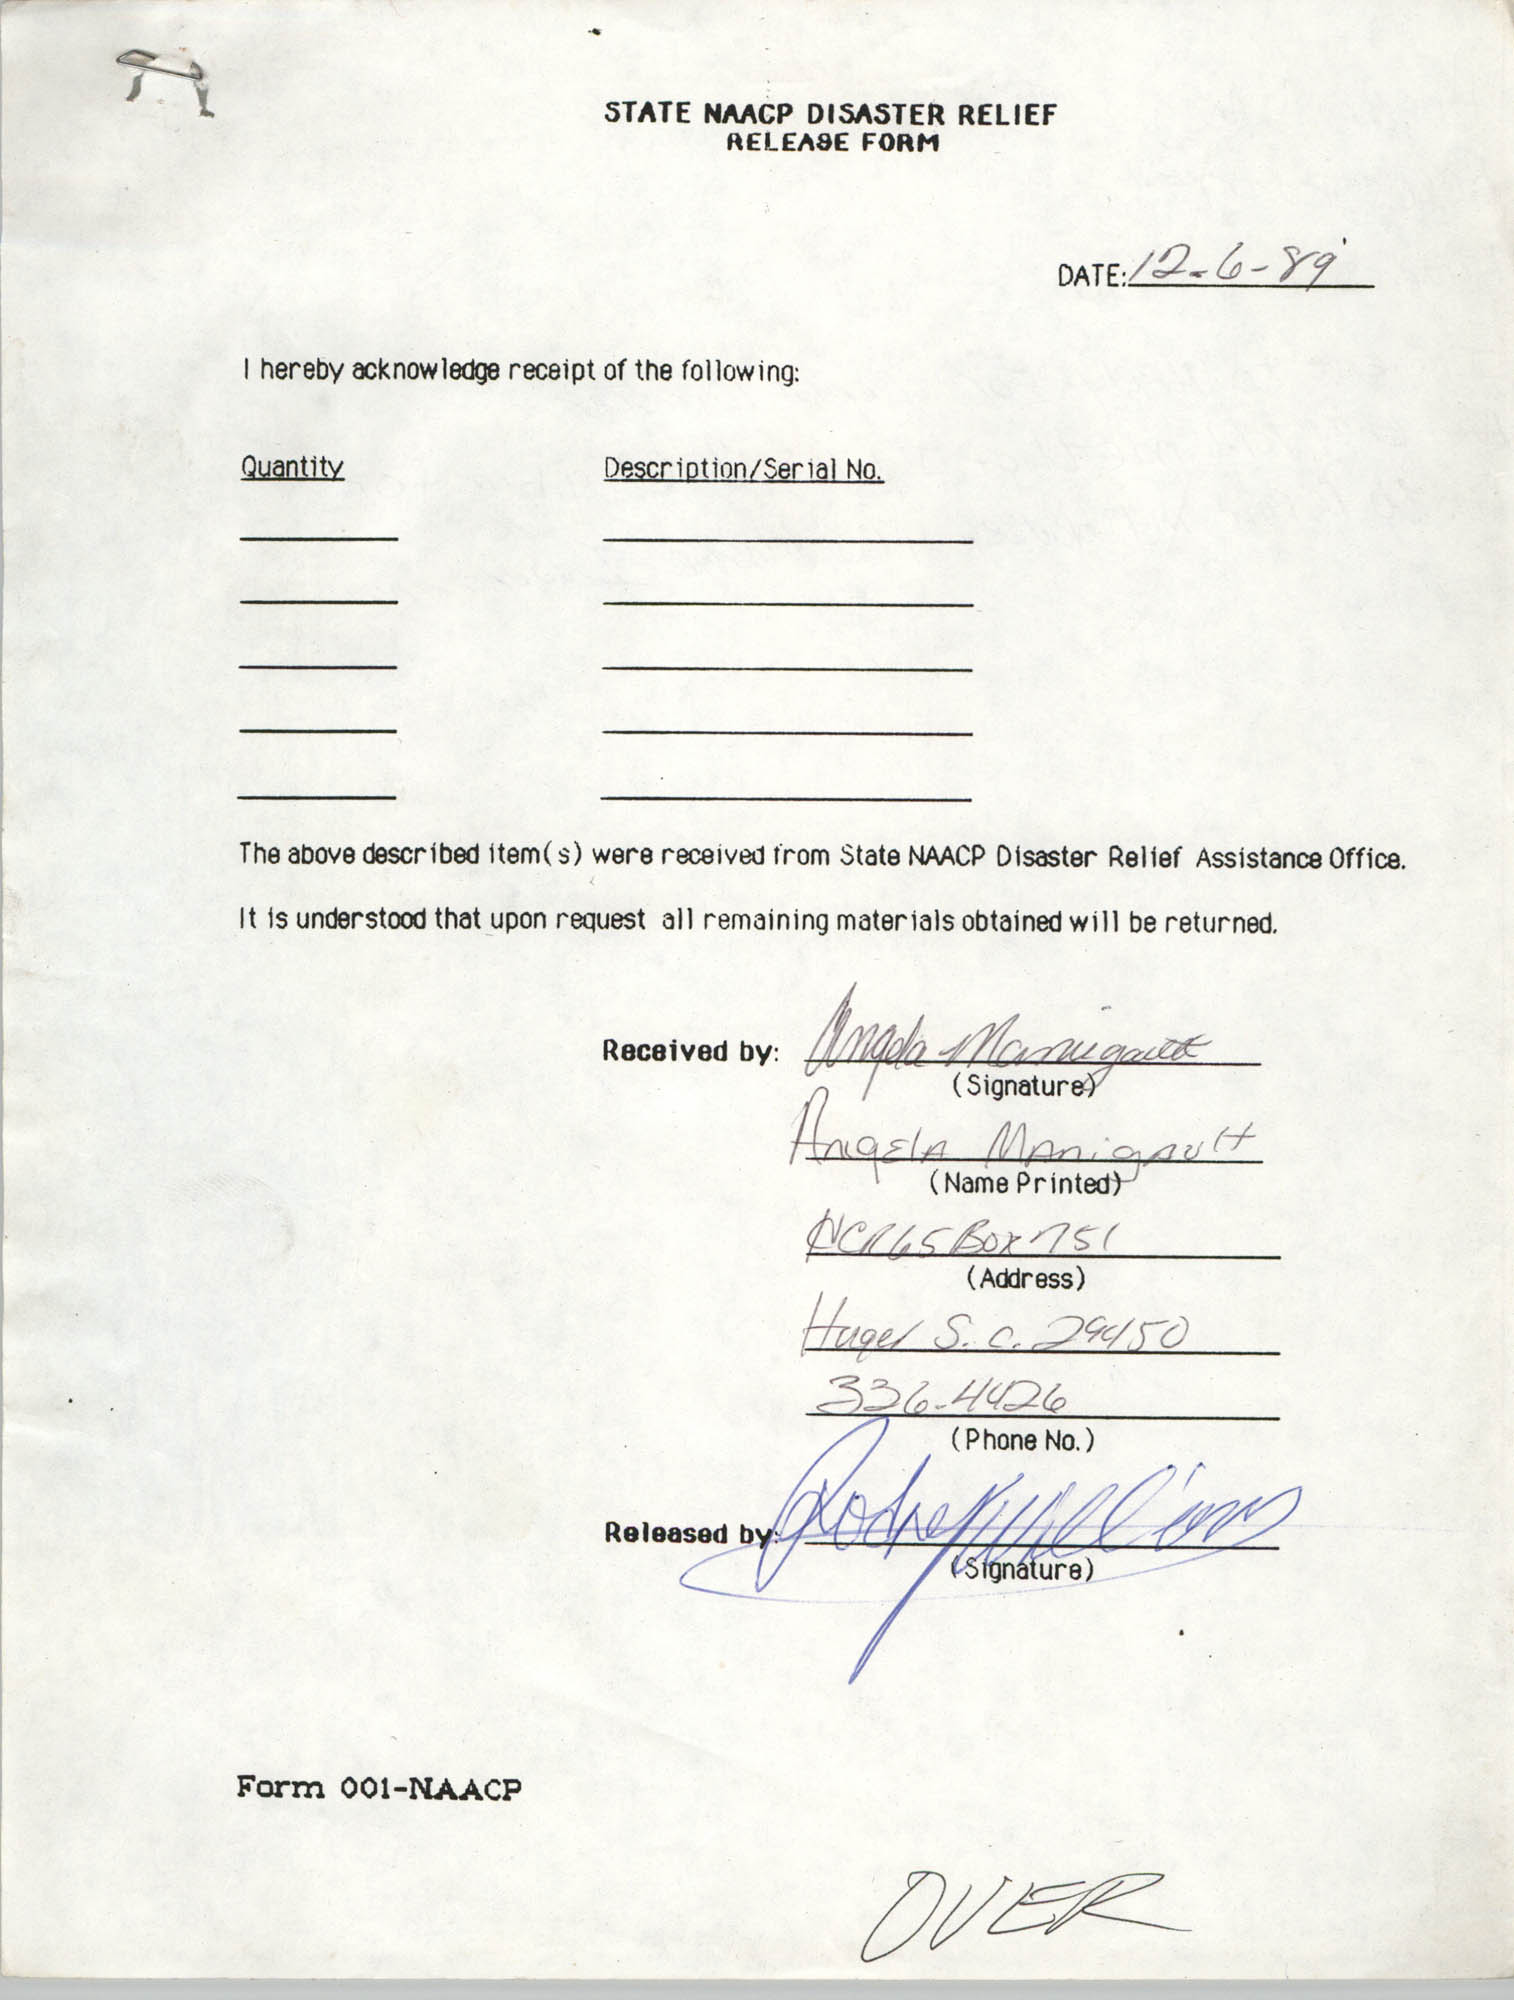 State NAACP Disaster Relief, Hurricane Huge Release Form, 1989, Page 4